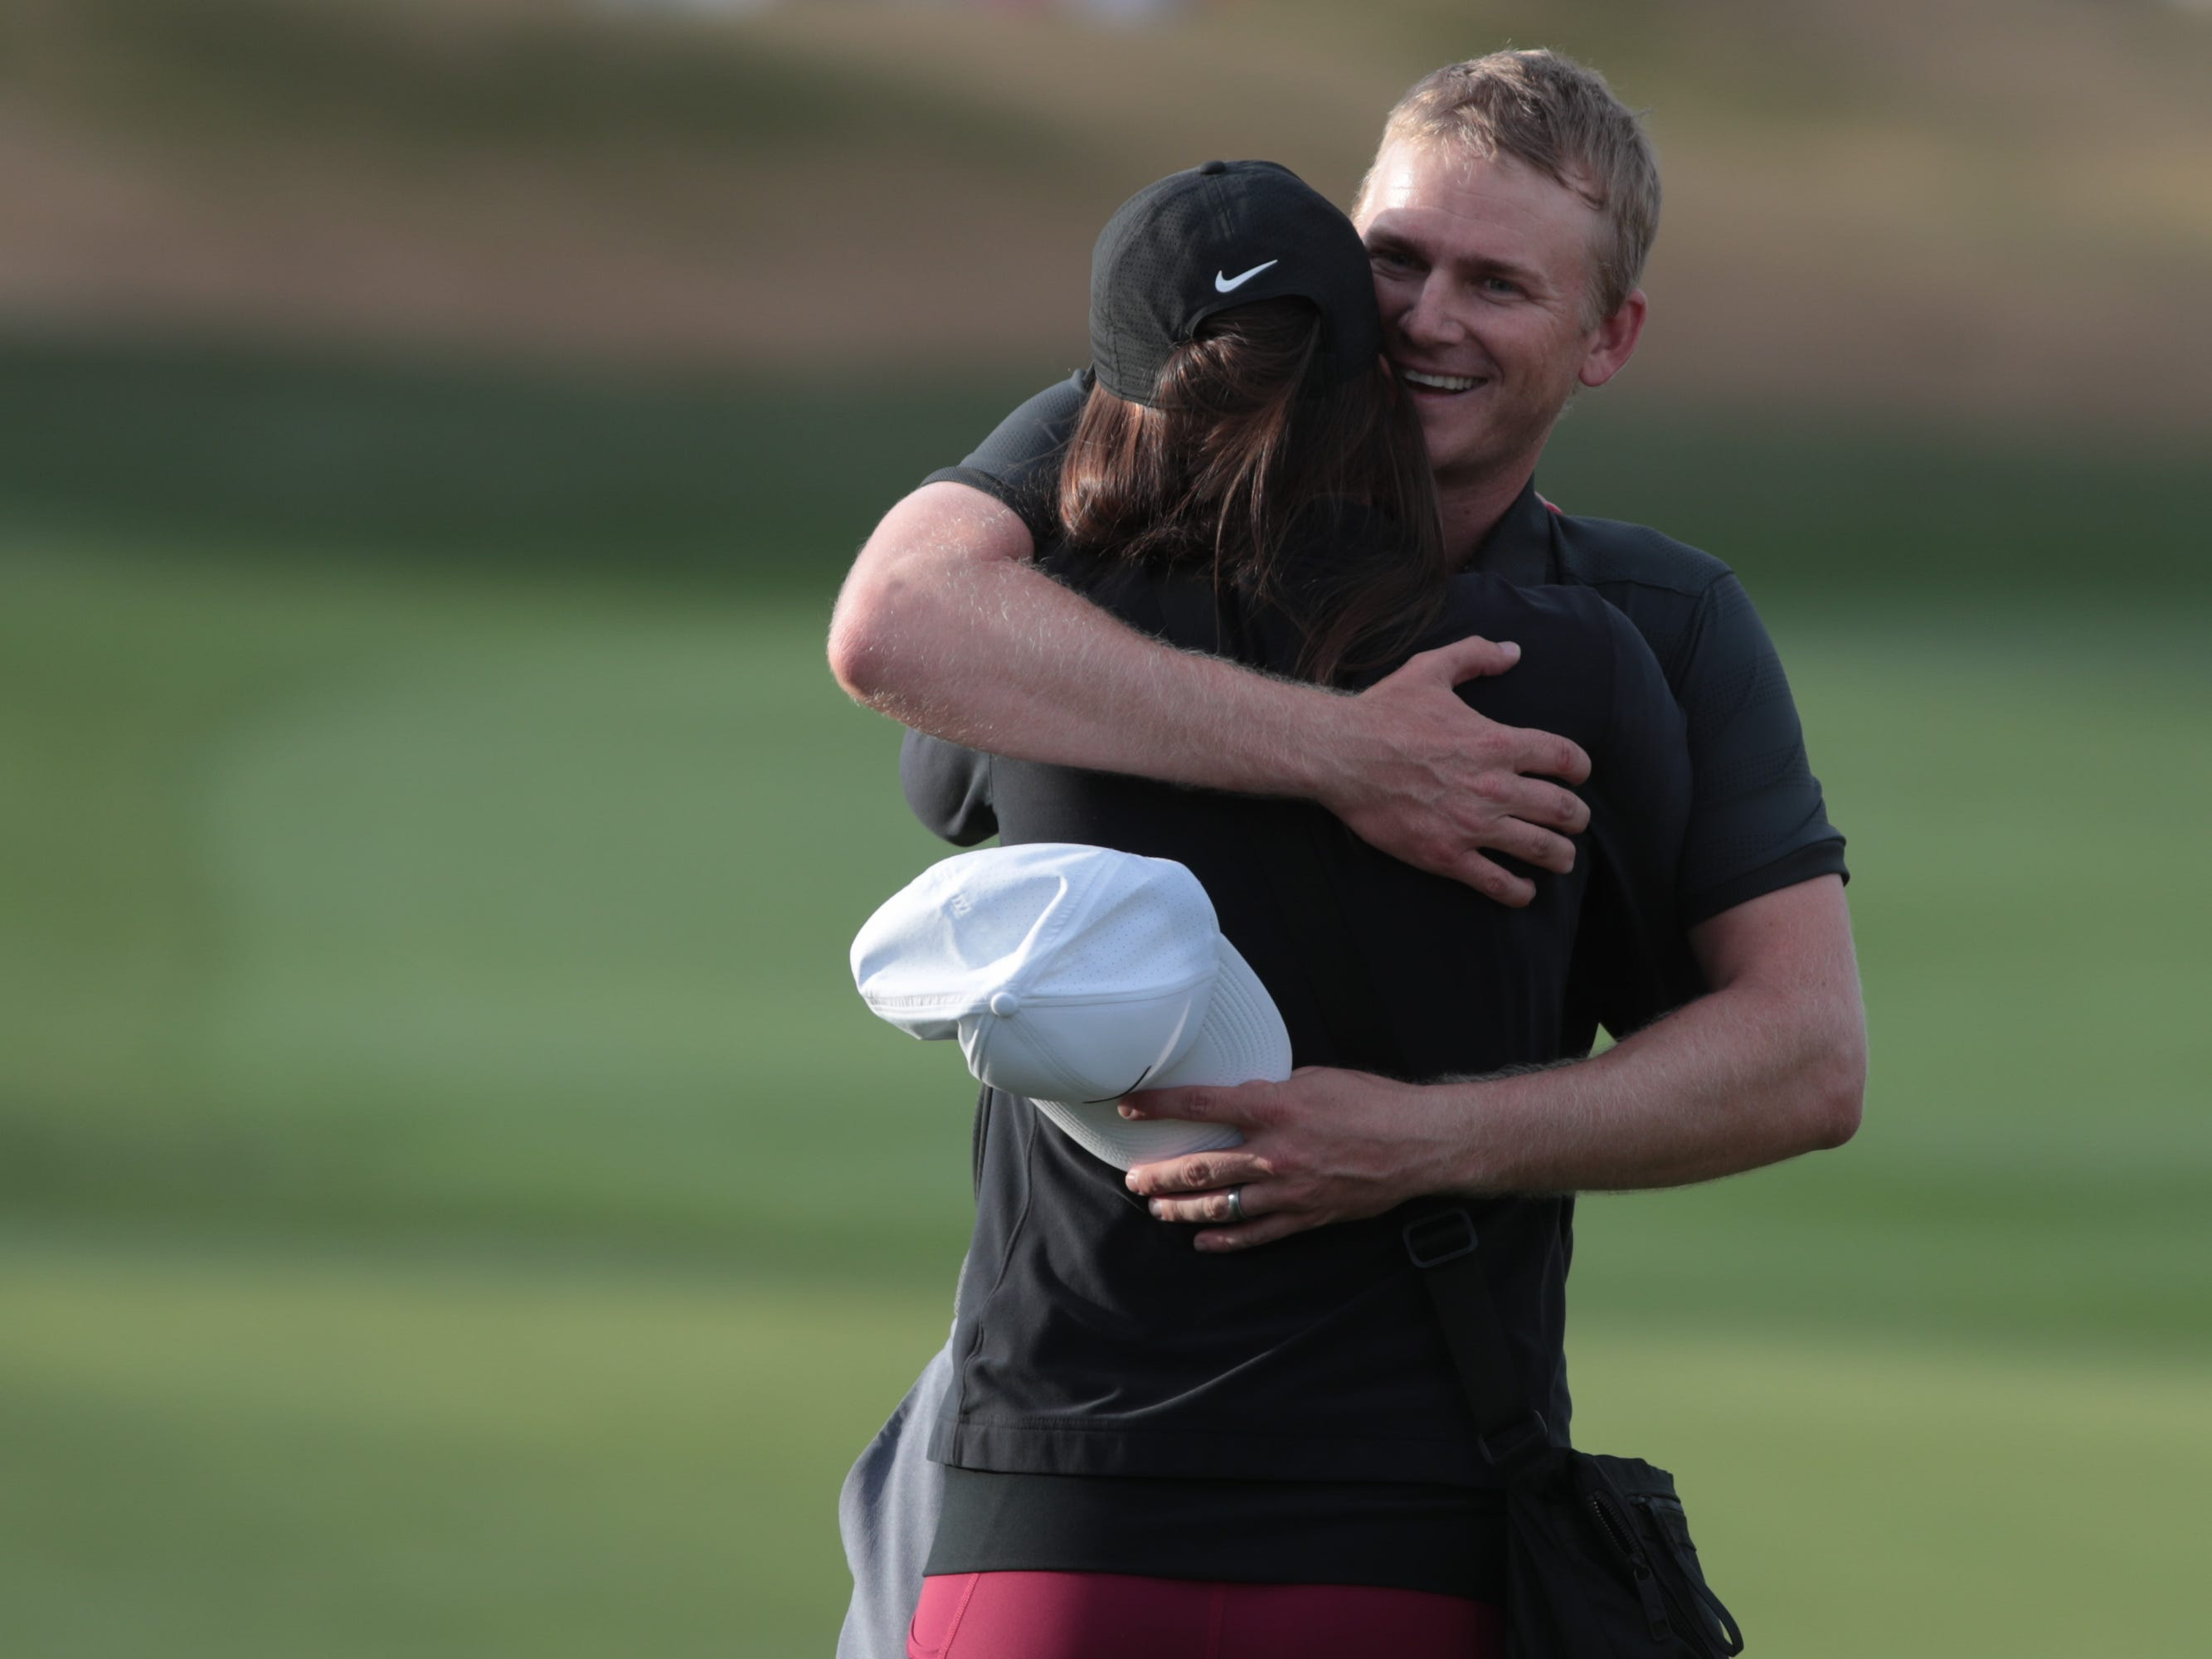 Adam Long celebrates with his wife, Emily Long, after winning the 2019 Desert Classic, Sunday, January 20, 2019.